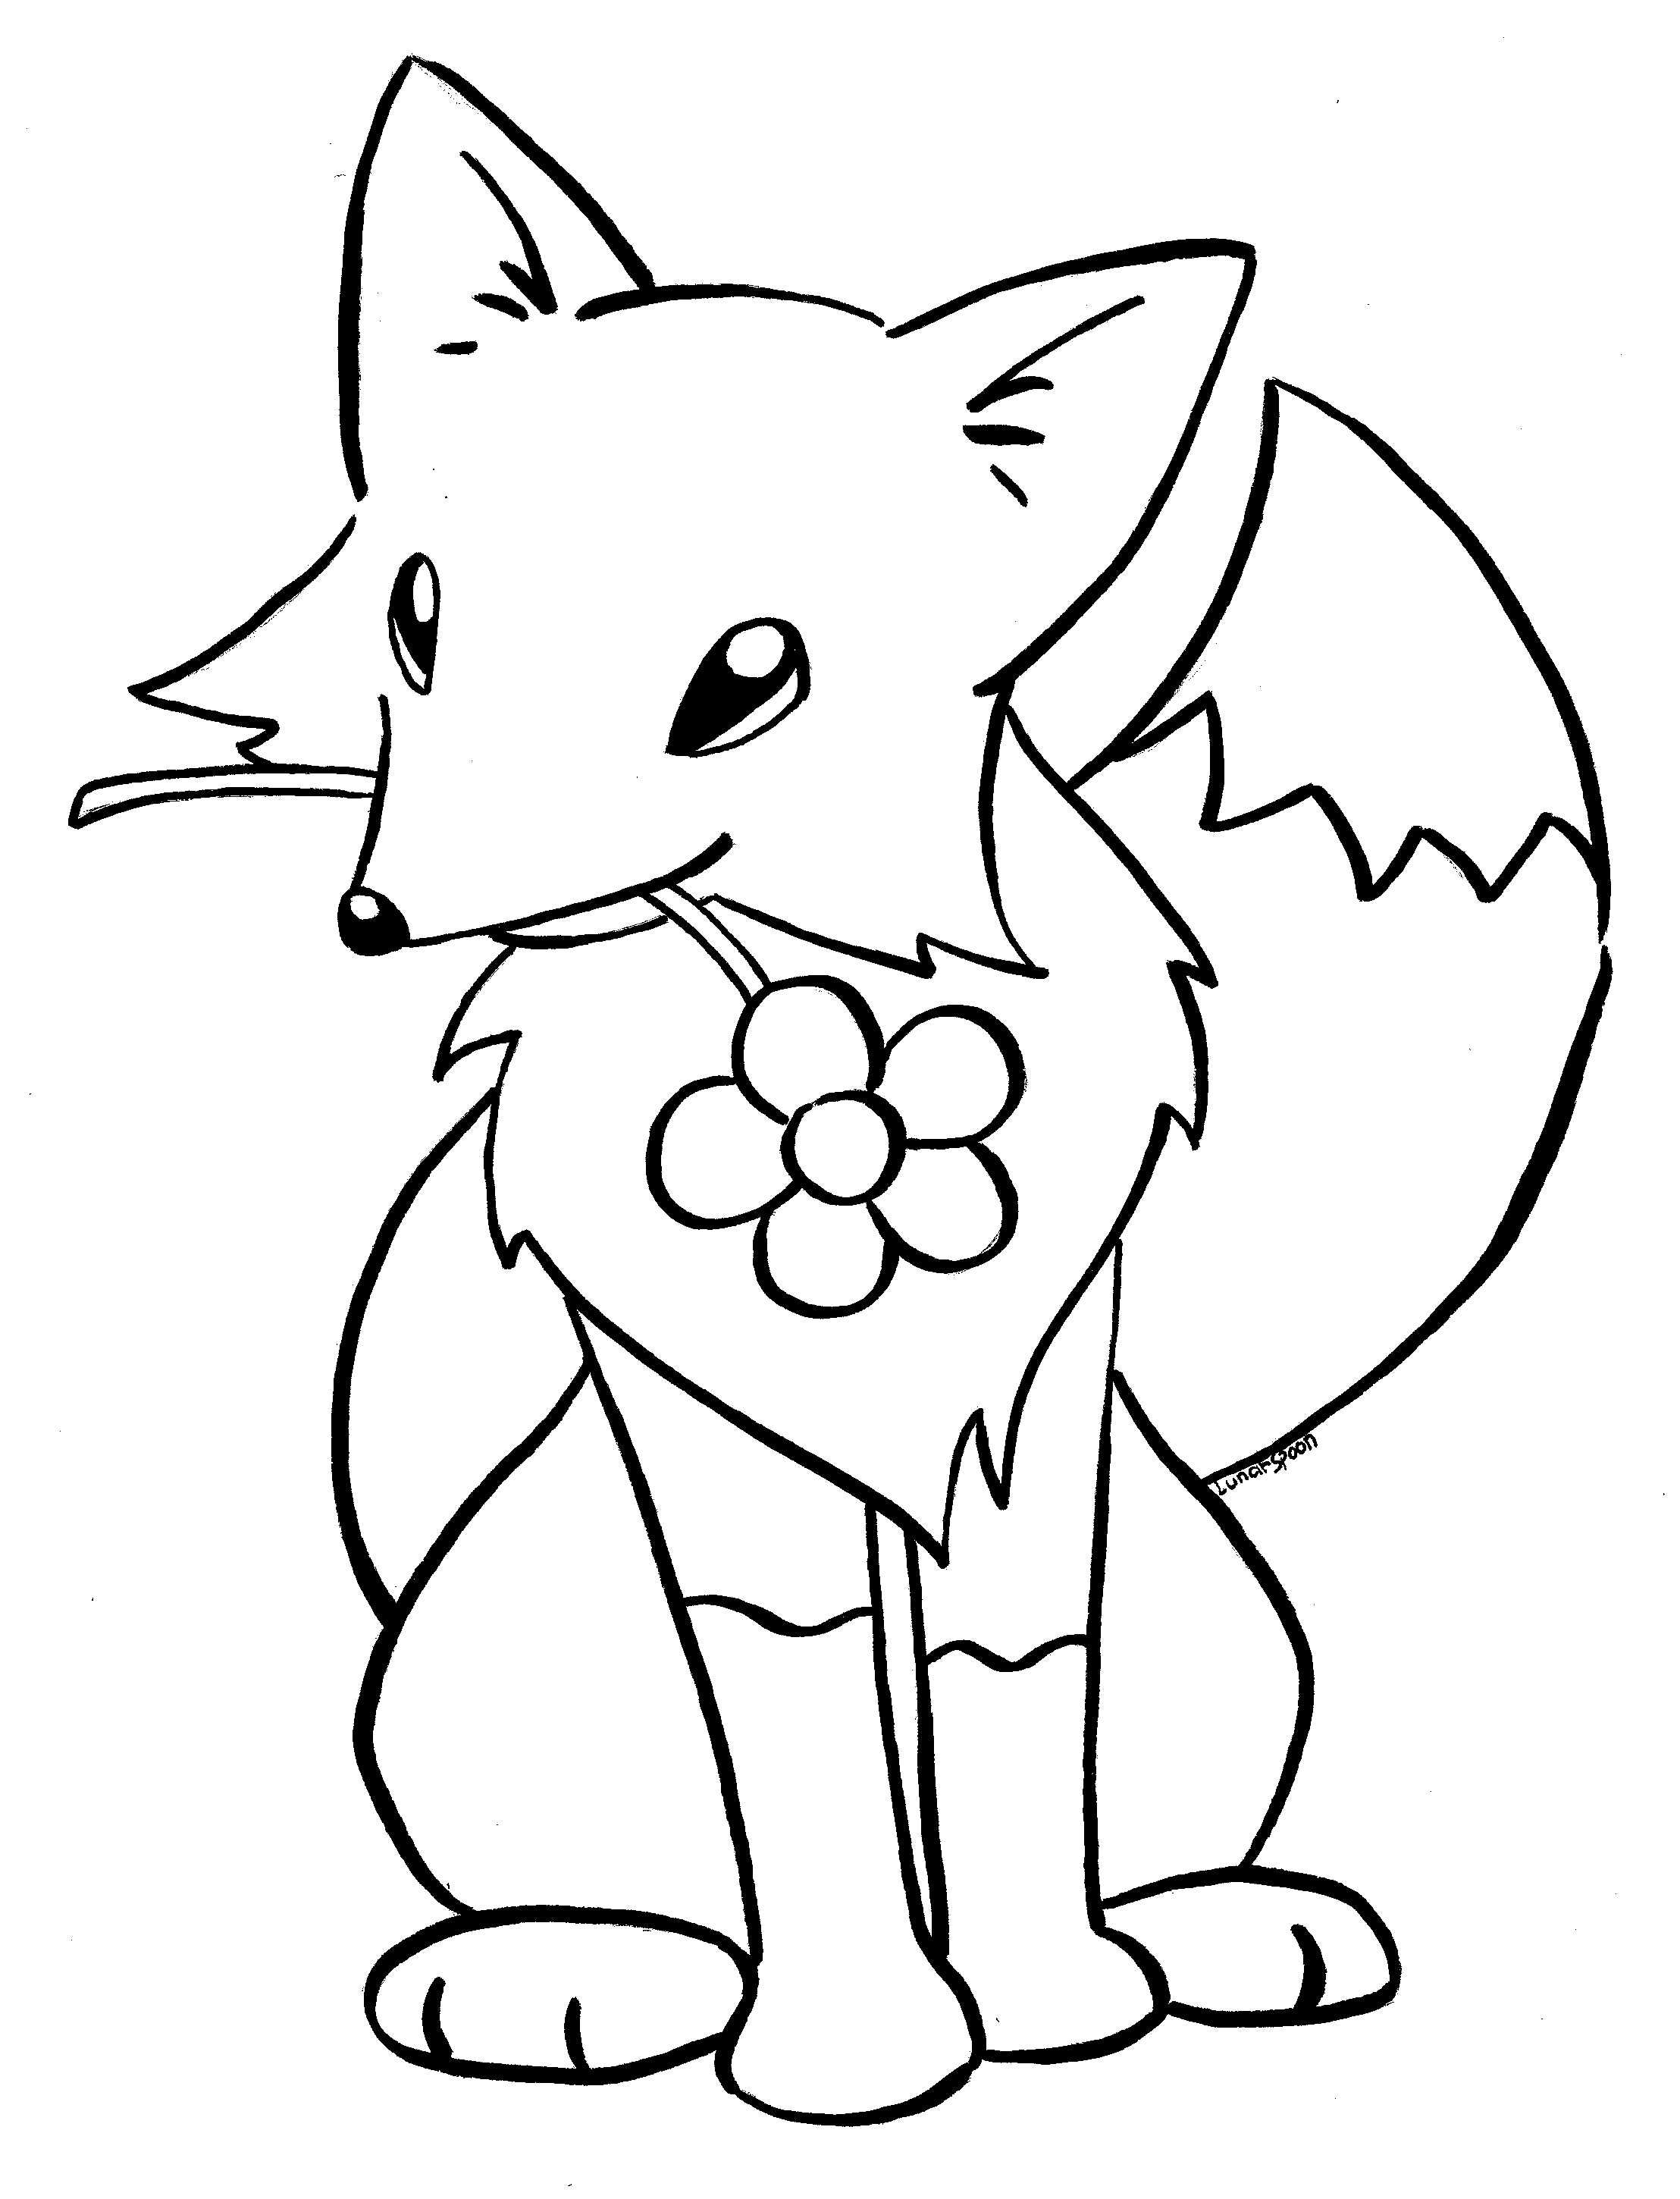 Coloring a Book Kitsune